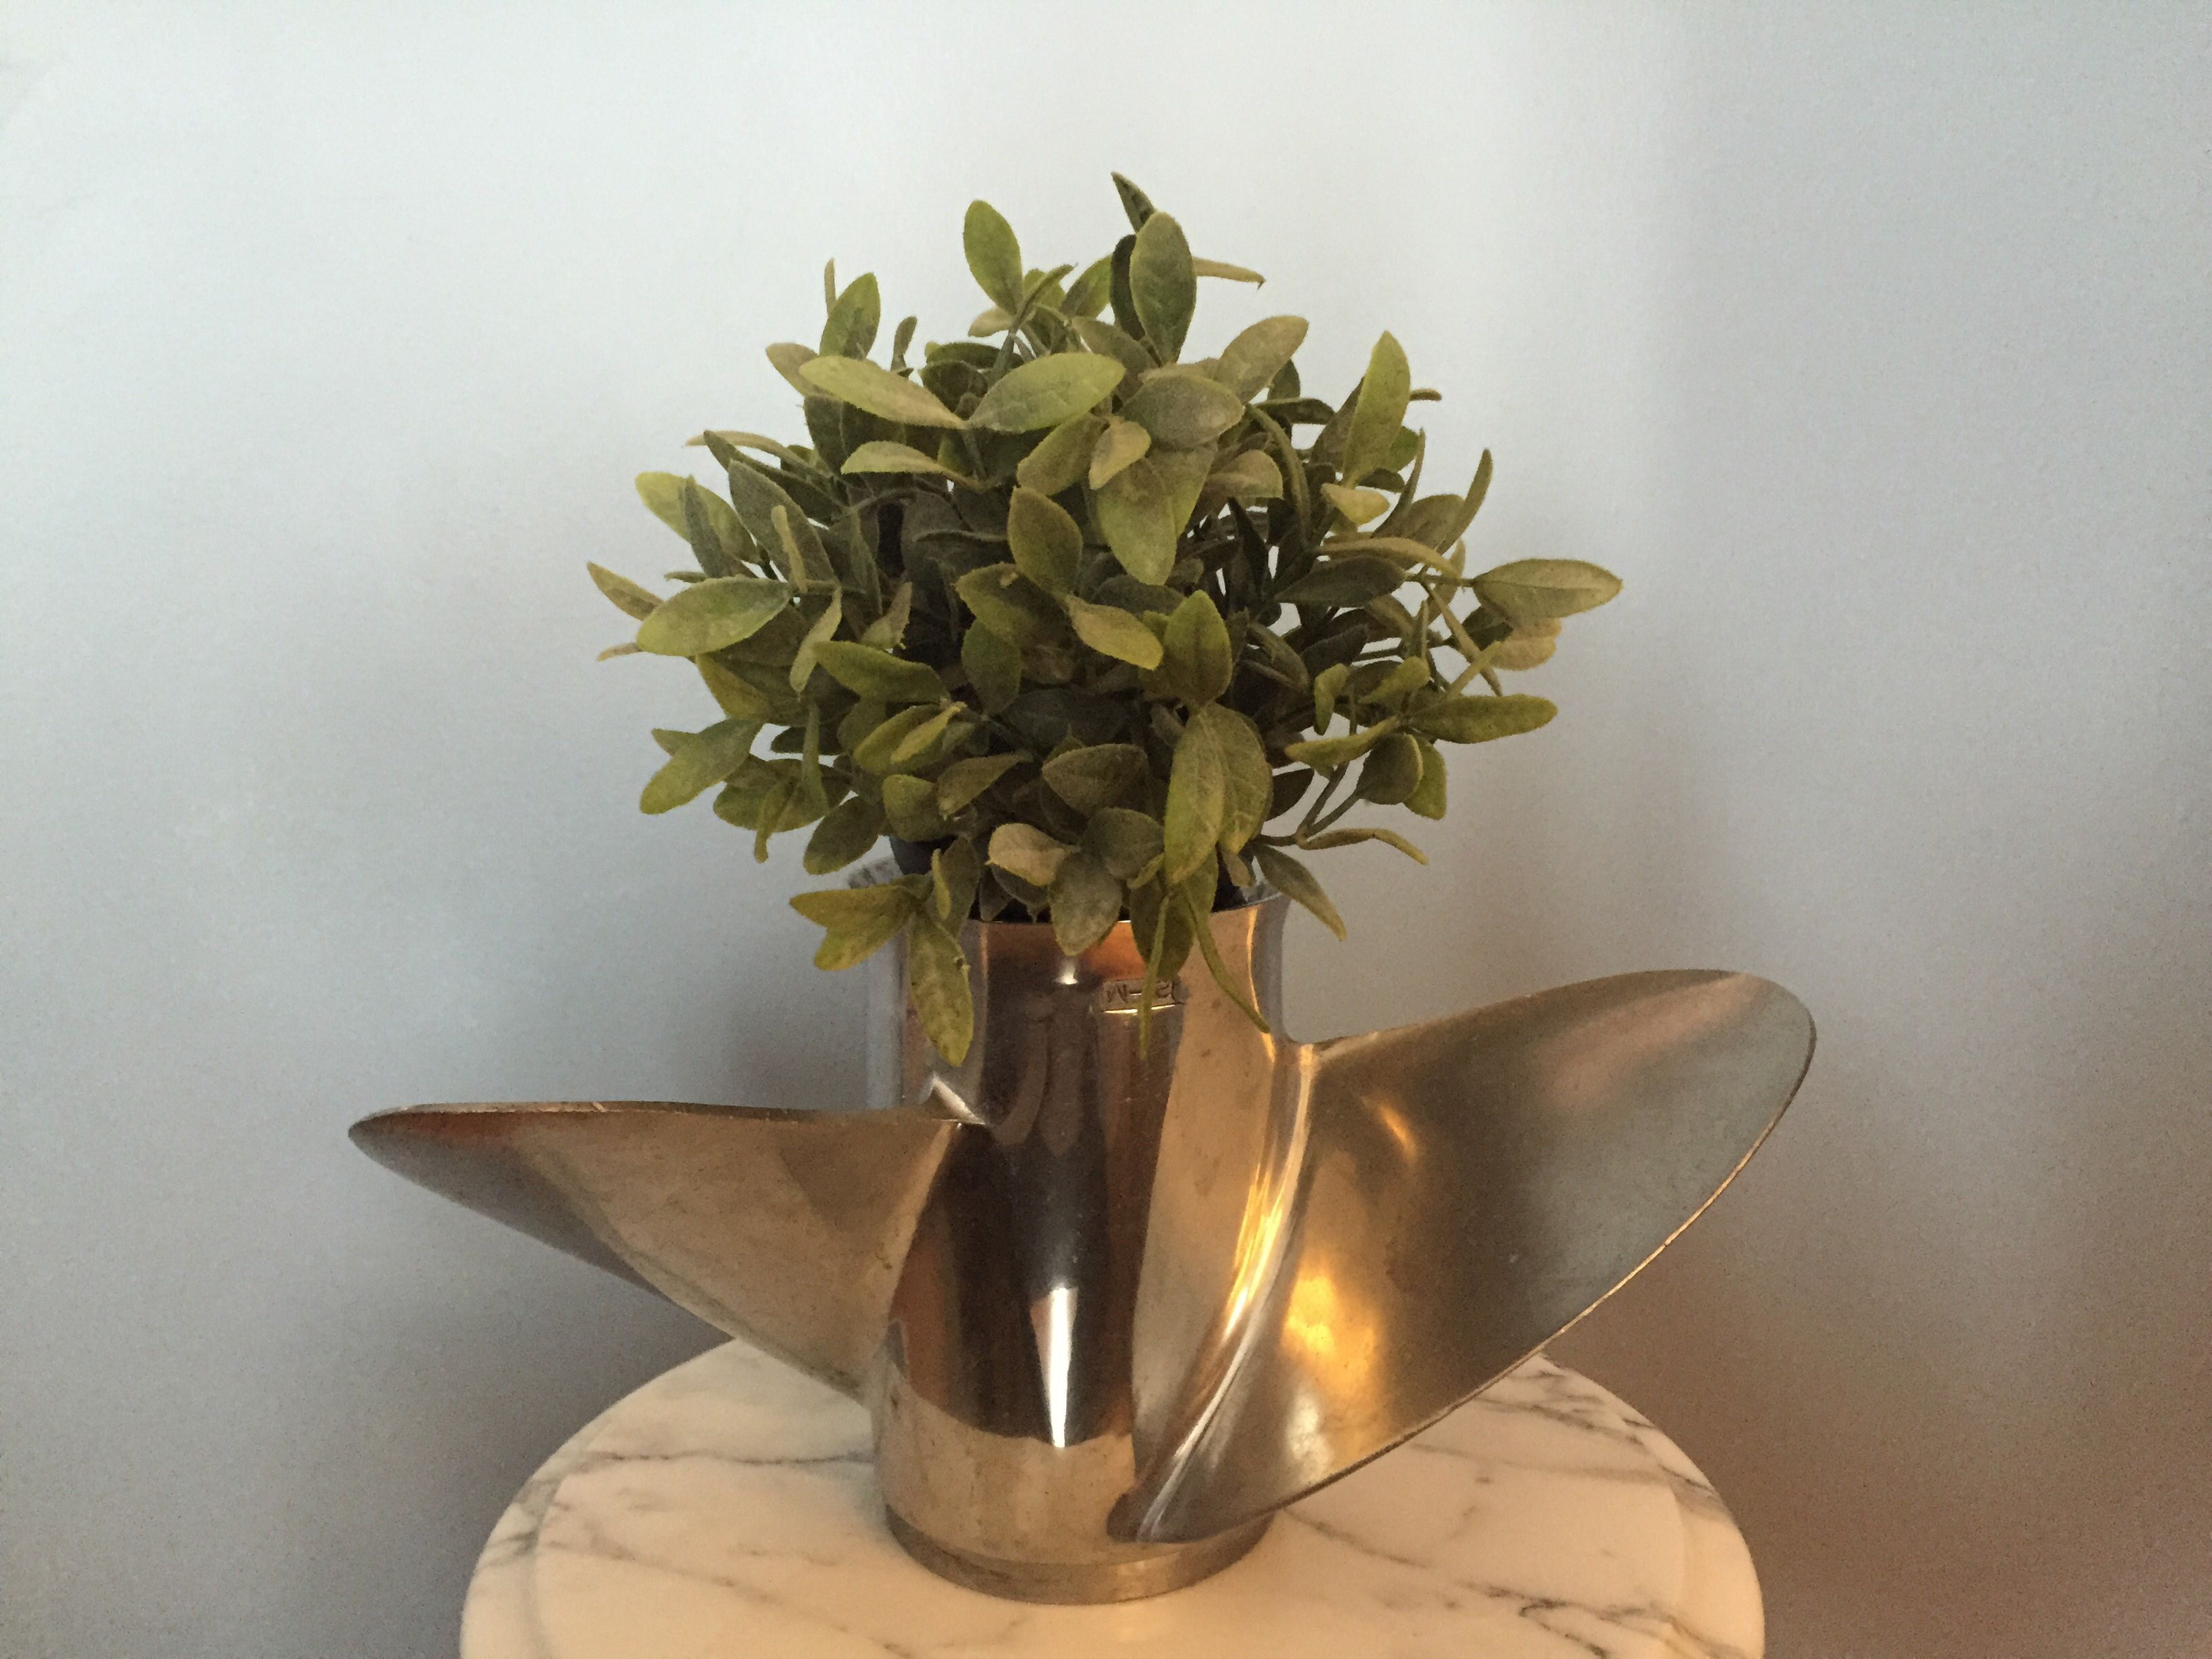 Repurpose An Old Boat Propeller As A Plant Holder It S Great For